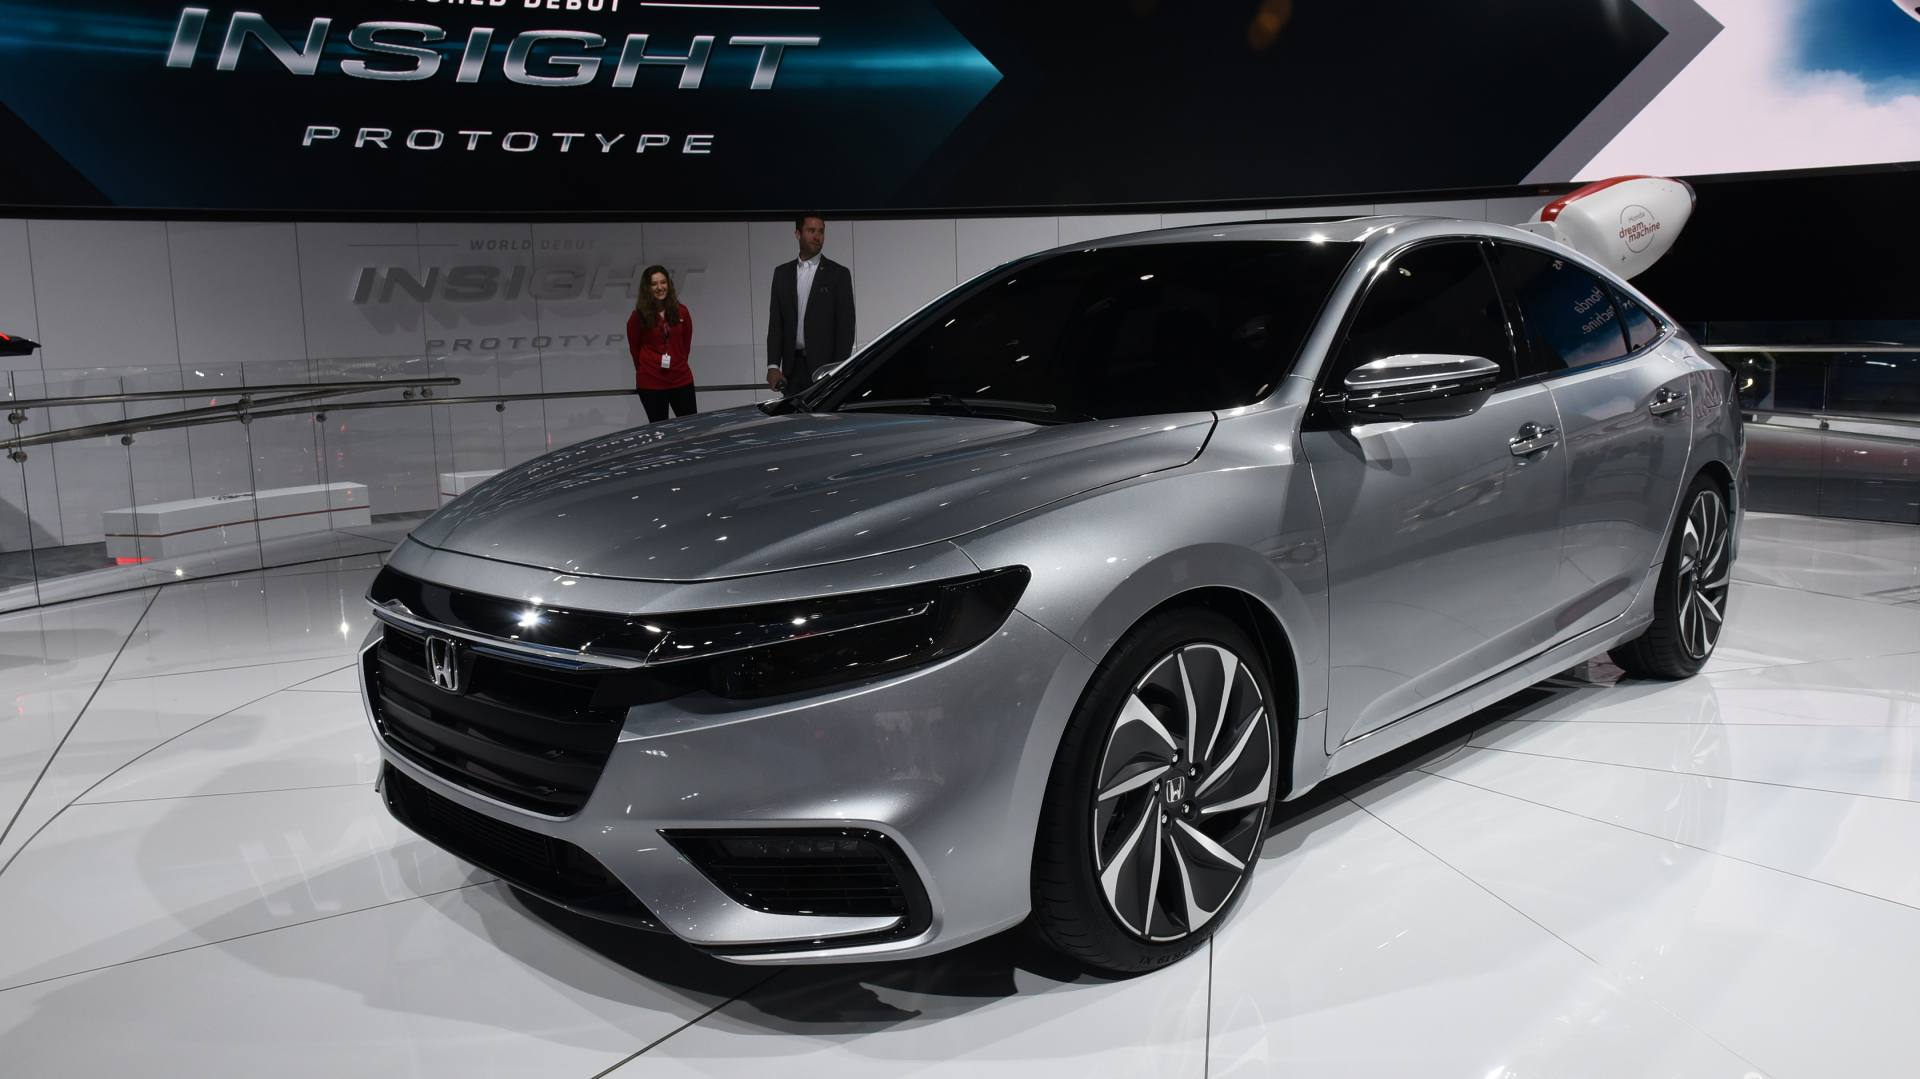 Honda shows off New Insight in Detroit - The Drive